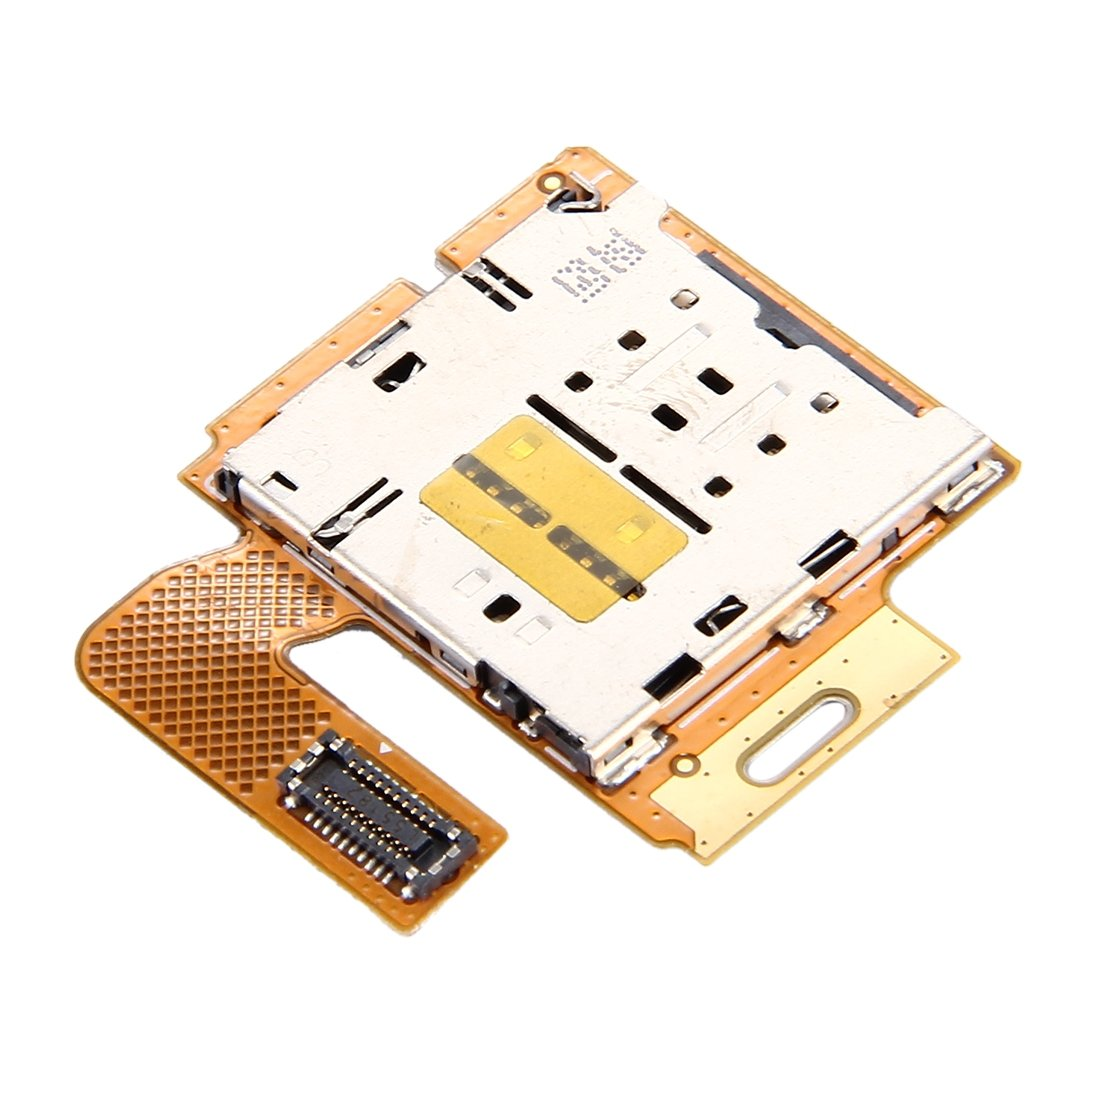 A&G Repair & Spare Parts SD Card Reader Contact Flex Cable for Galaxy Tab S2 9.7 / T810